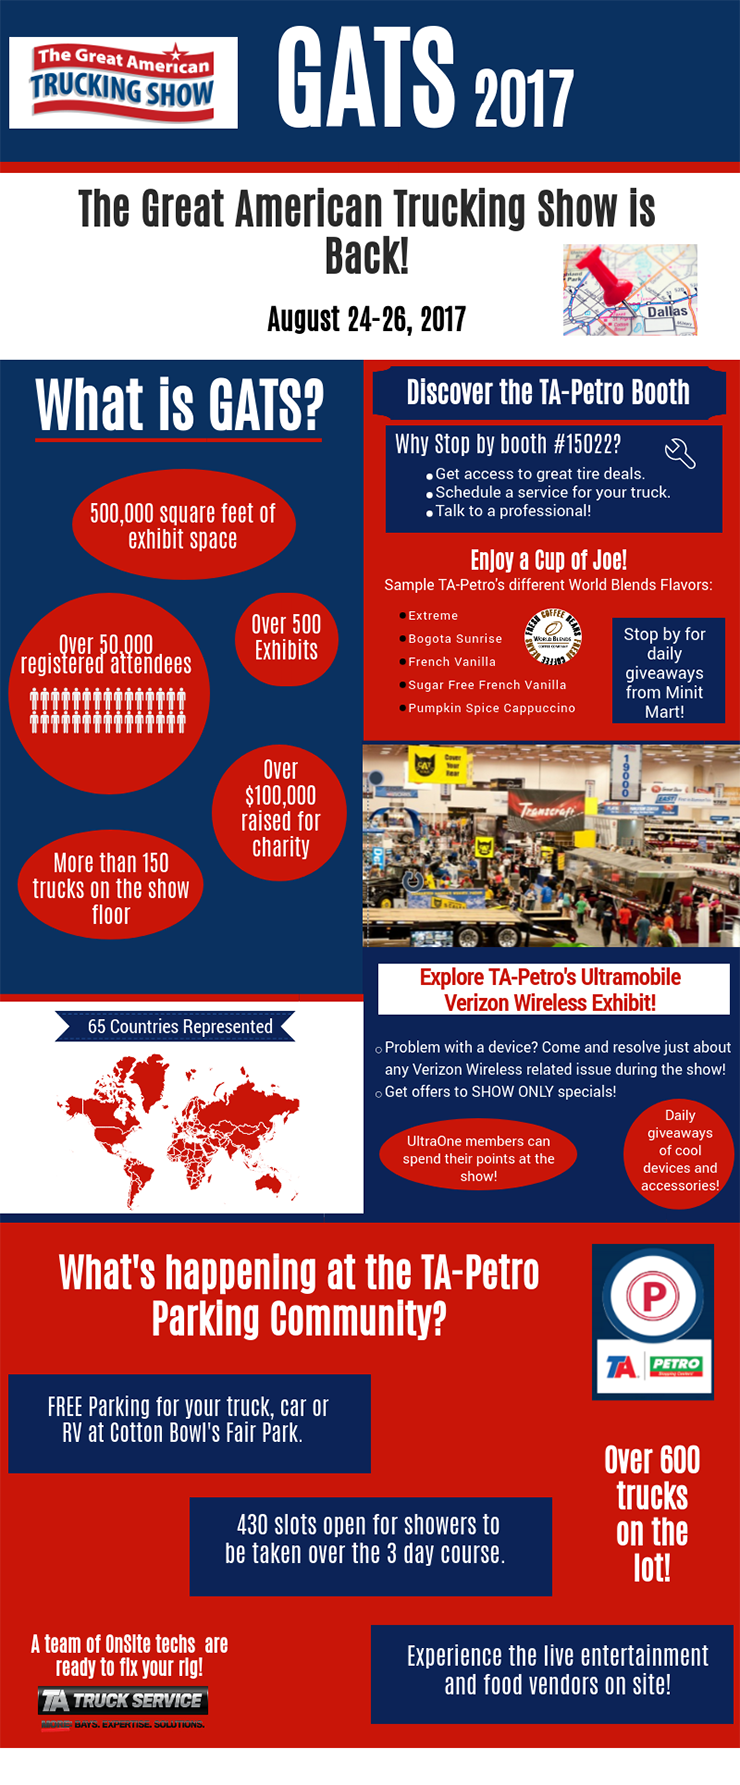 GATS 2017 infographic